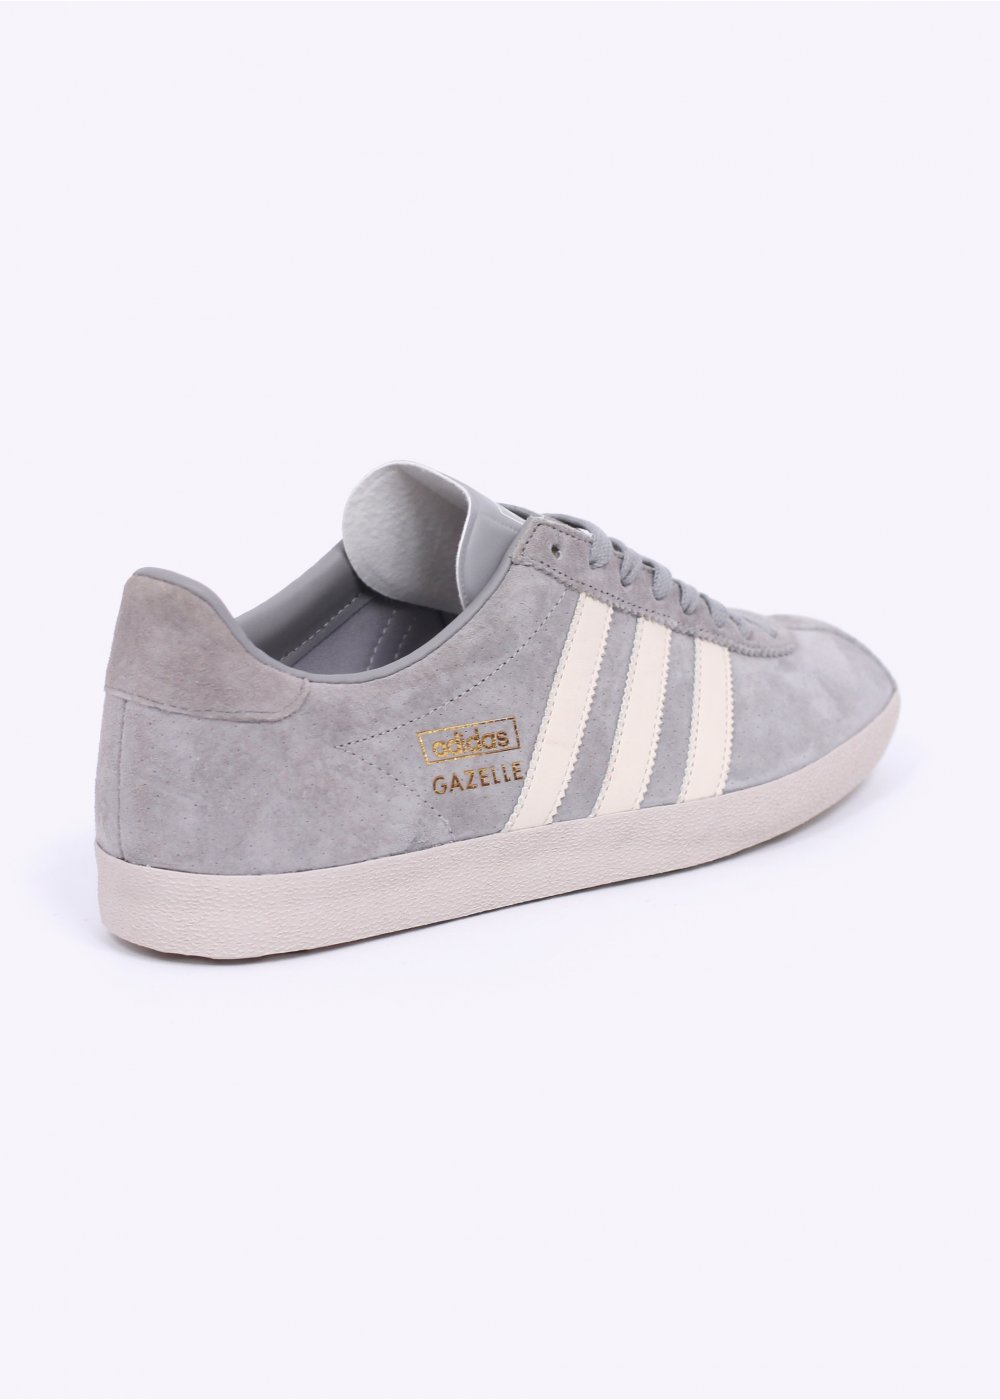 adidas gazelle og womens grey adidas superstar shoes buy online